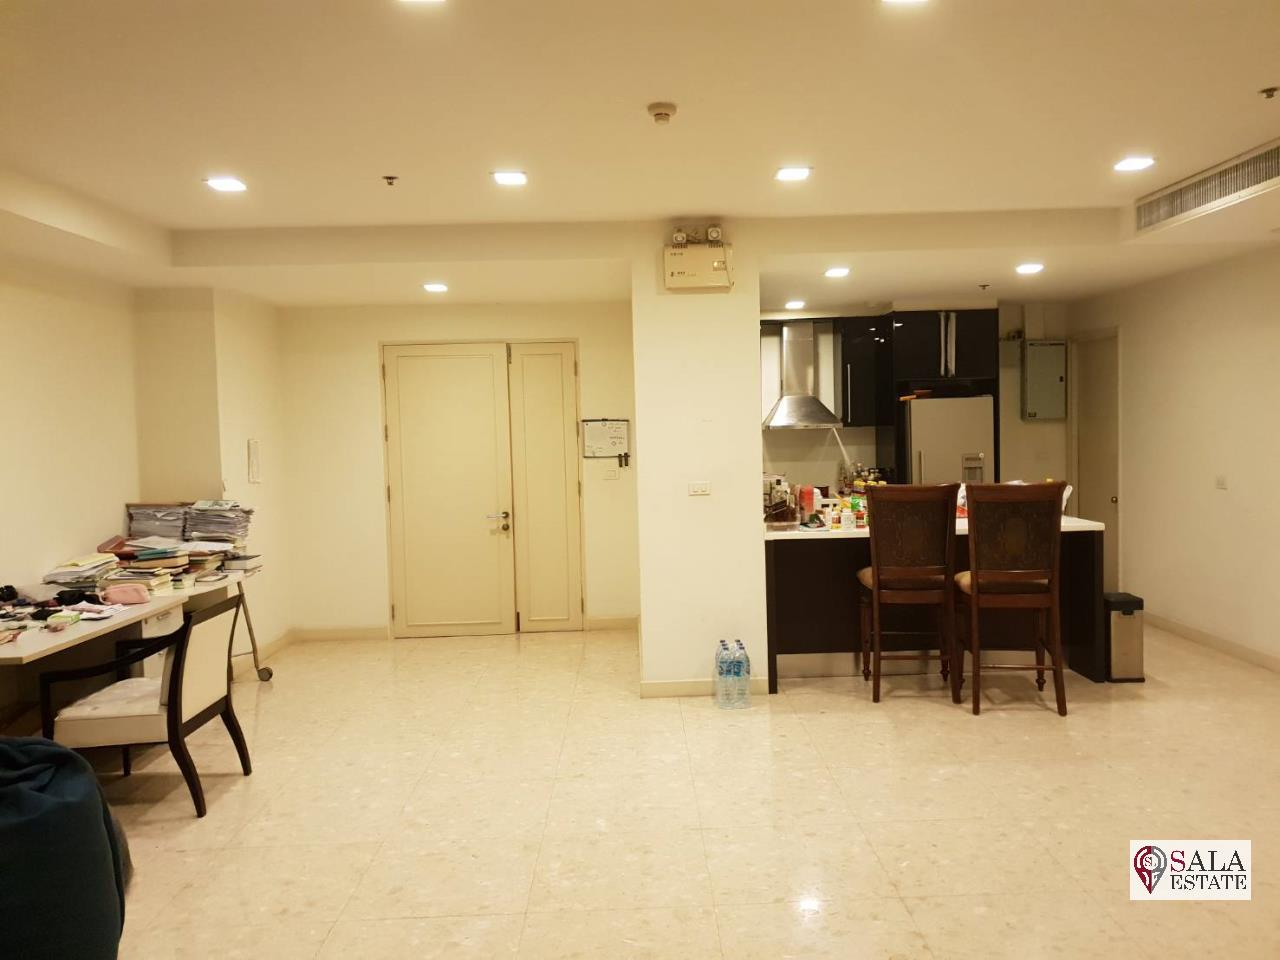 SALA ESTATE Agency's (FOR SALE)NUSASIRI – BTS EKKAMAI, 2BEDROOMS 3BATHROOMS , FULLY FURNISHED, CITY VIEW 1